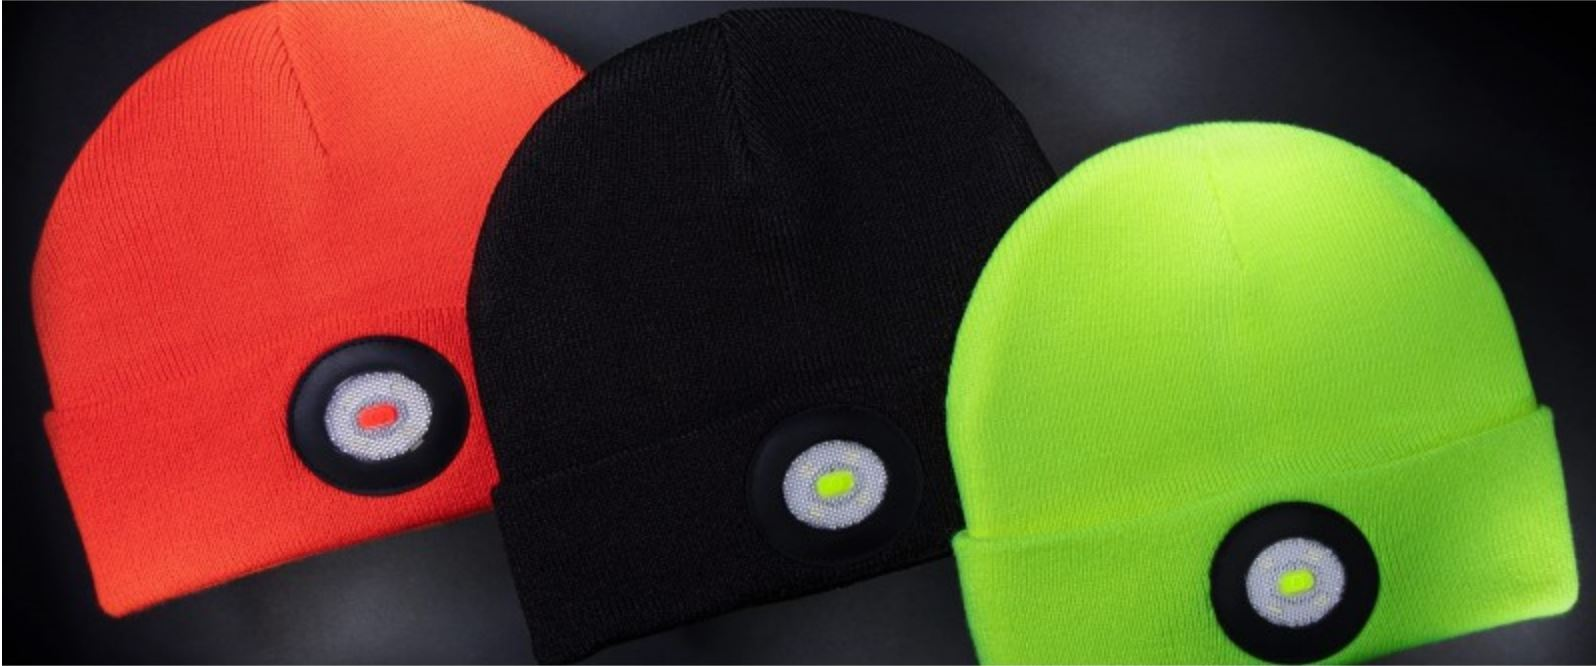 beanie hat with built in light